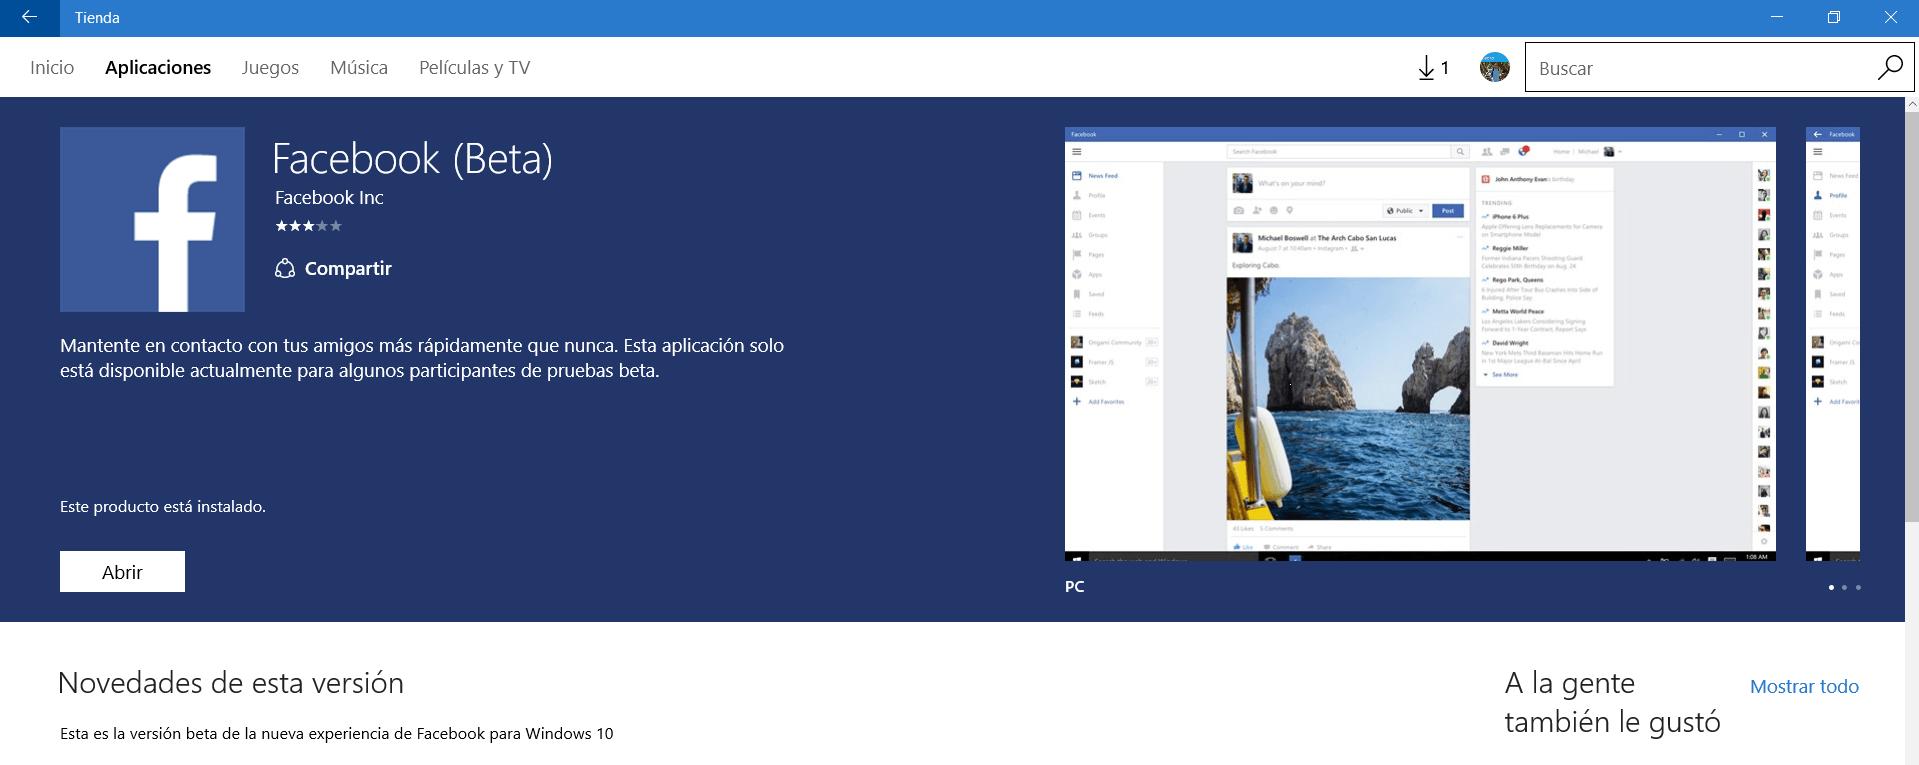 Facebook beta para windows 10 pc se actualiza con novedades for Windows 10 pc